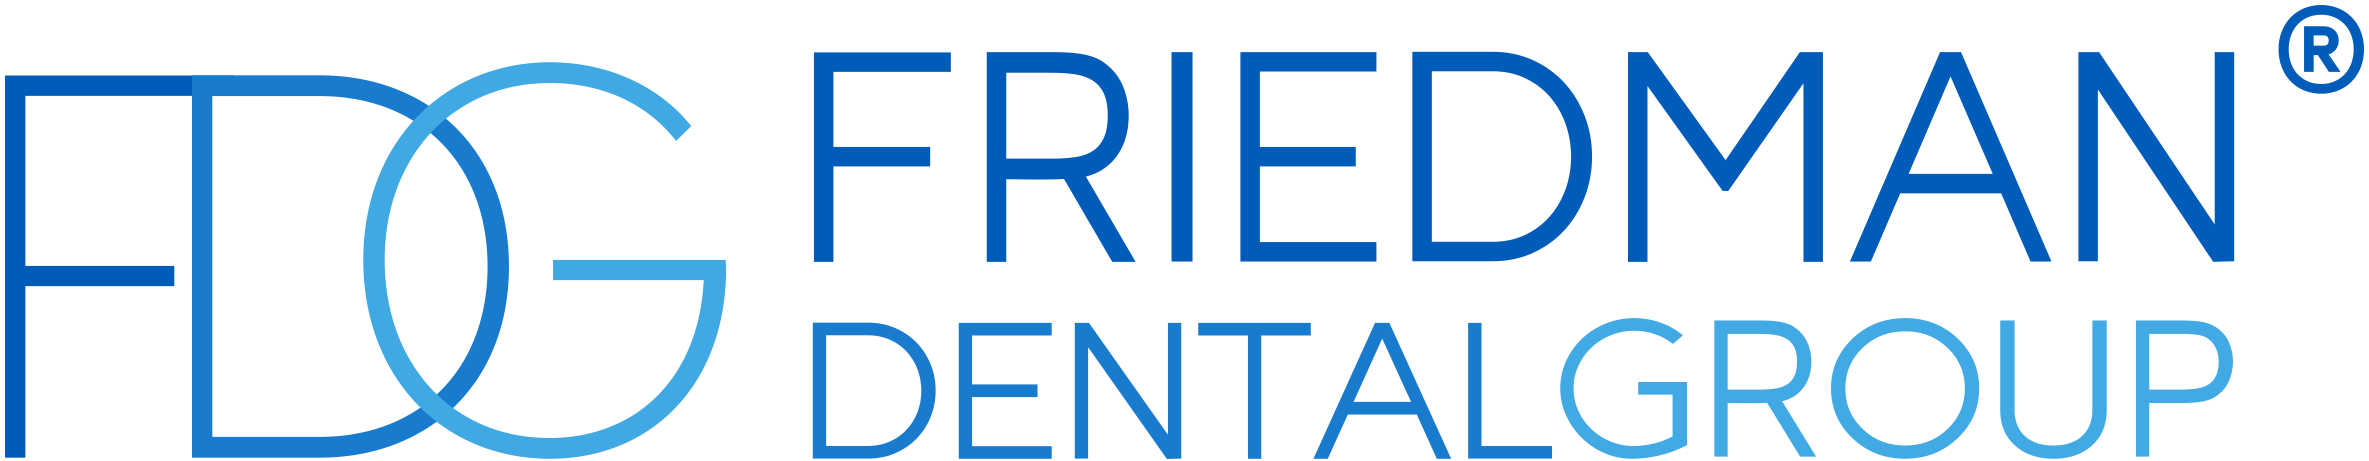 Friedman Dental Group | South Florida Top Rated Dental Group